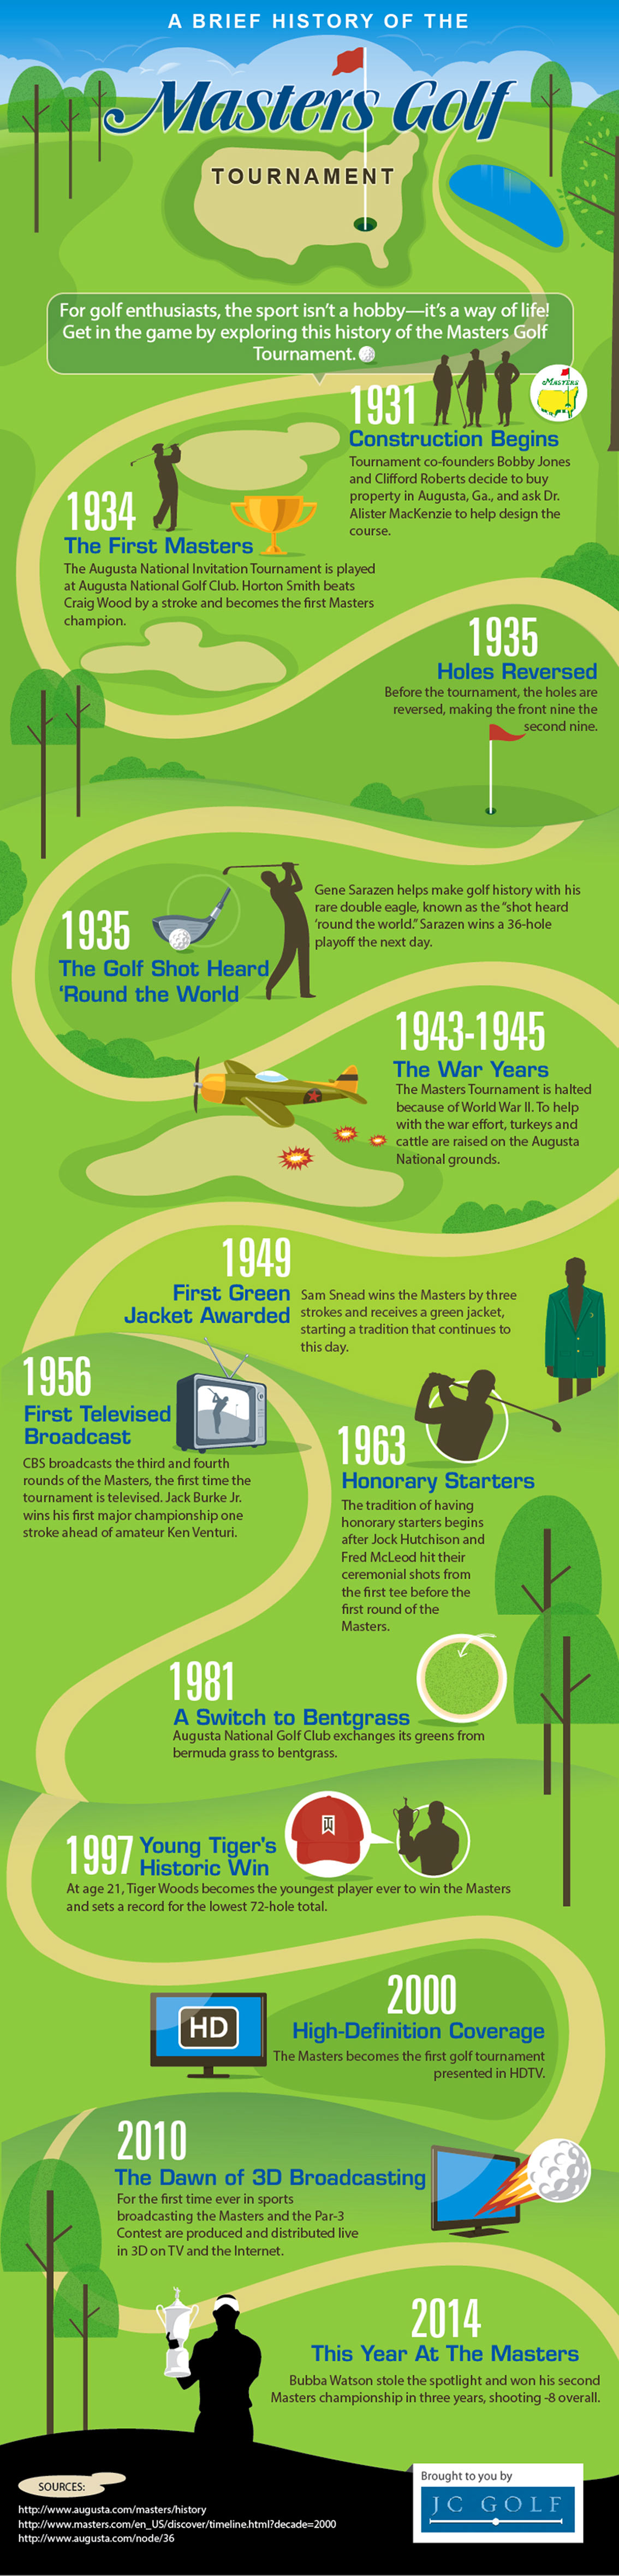 History of the Masters Golf Tournament Infographic